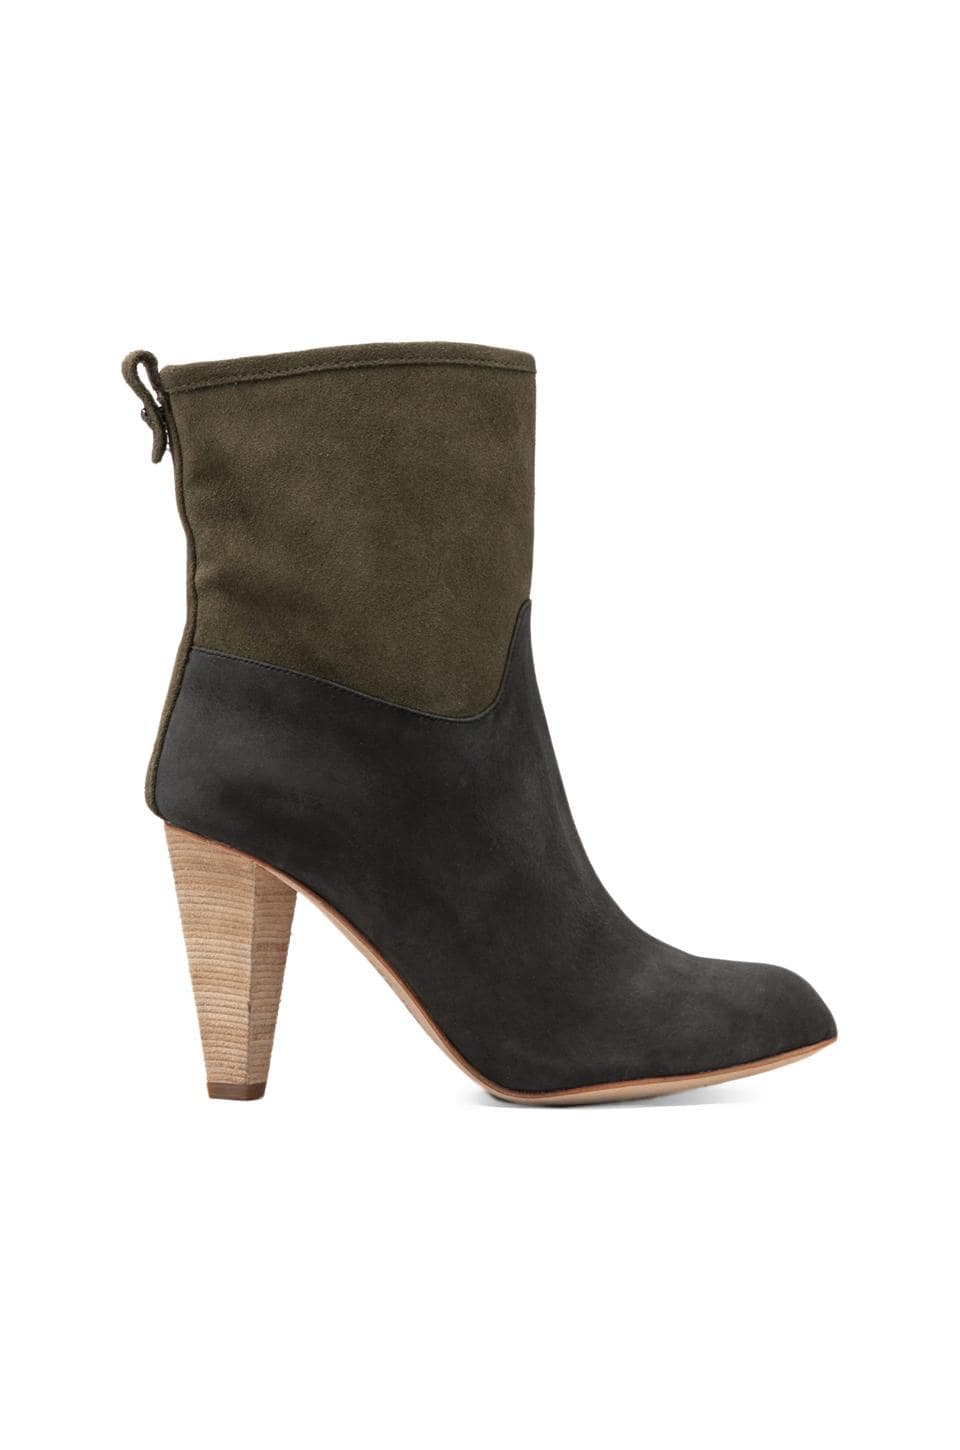 Matt Bernson Jameson Bootie in Nero/Moss